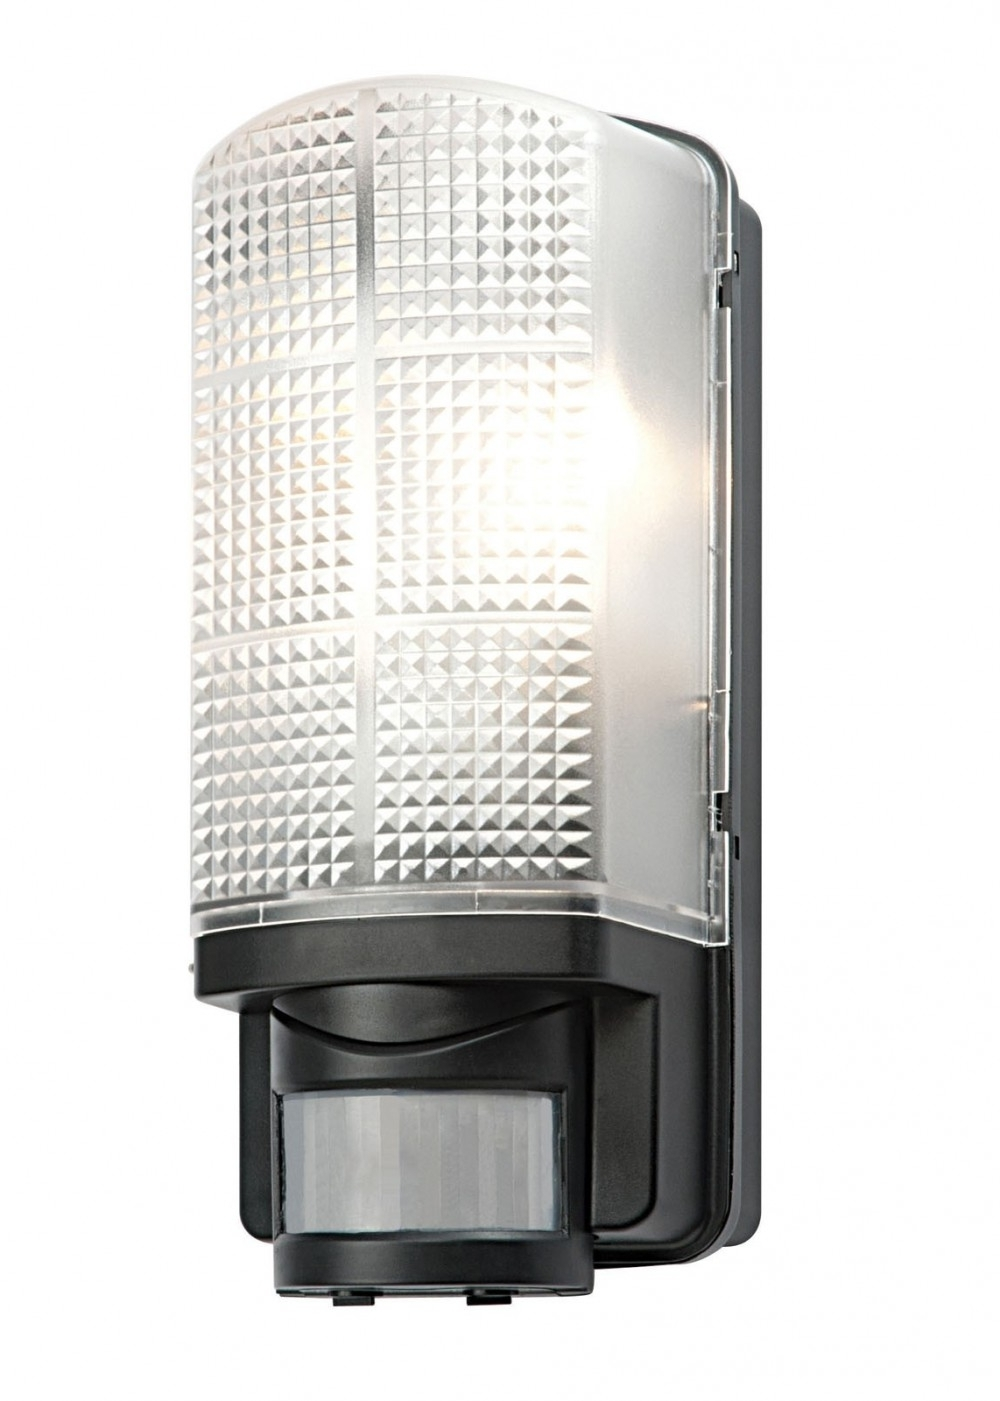 Newest Best Outdoor Wall Led Lights With Regard To Safety With Motion Sensor Outdoor Wall Light (Gallery 6 of 20)